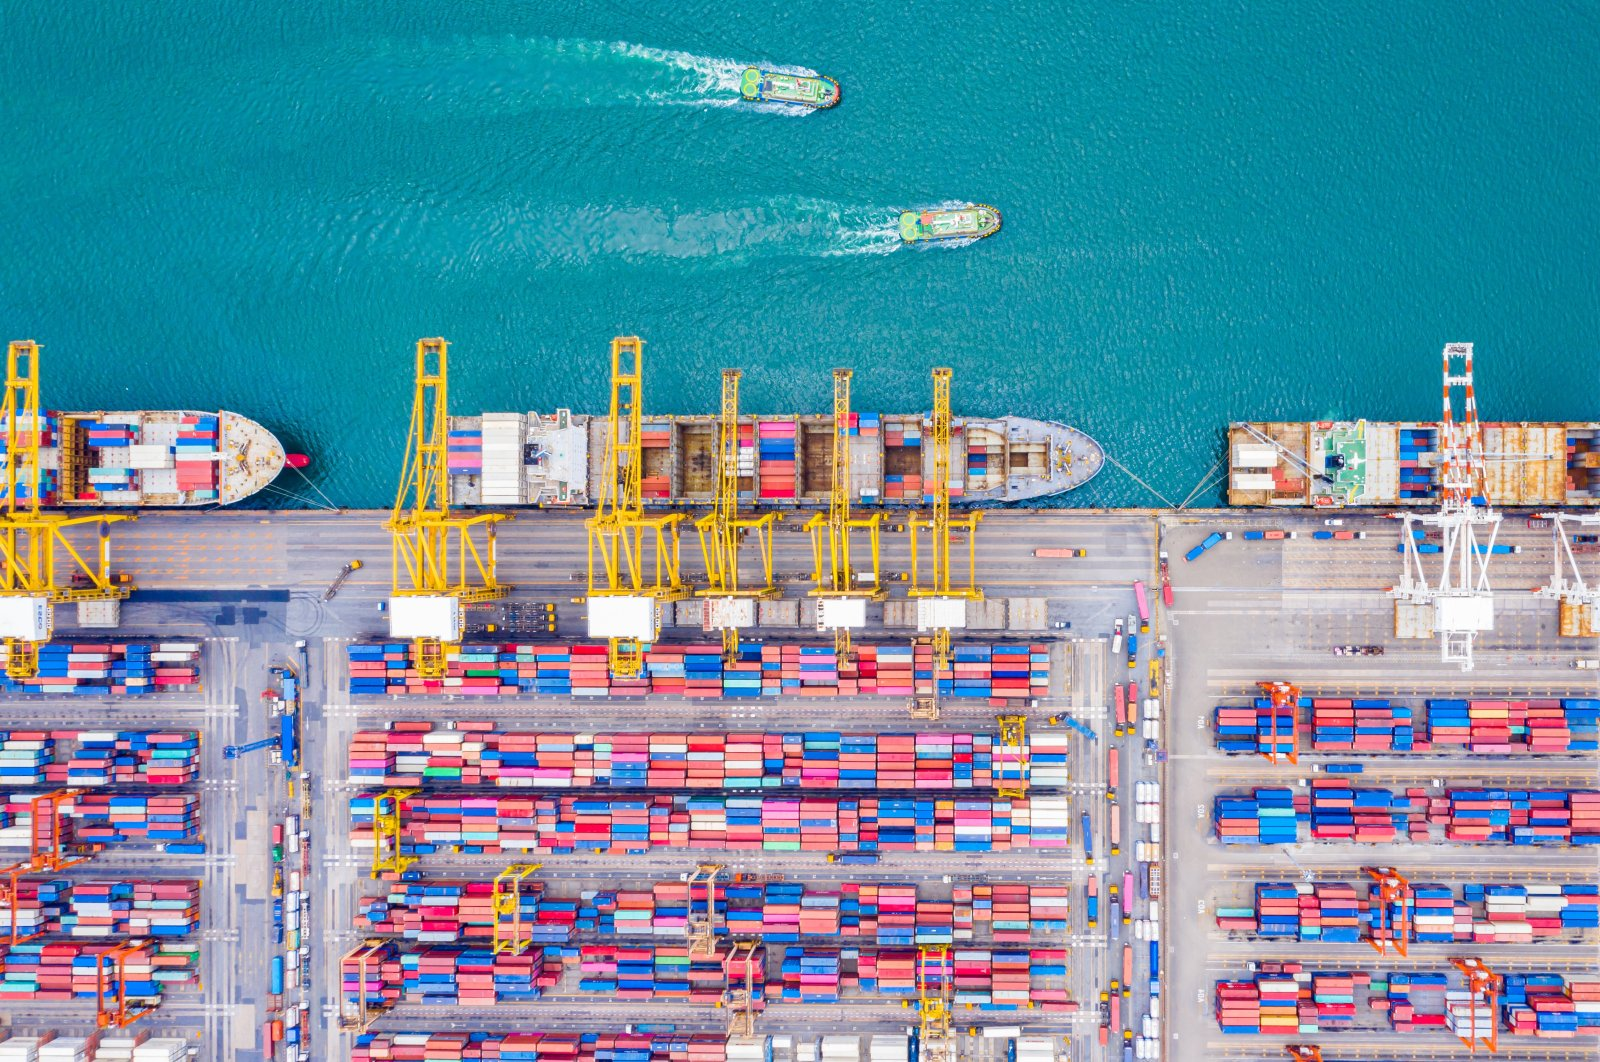 Container ships seen in a port in western Turkey's Izmir province, June 3, 2020. (IHA Photo)